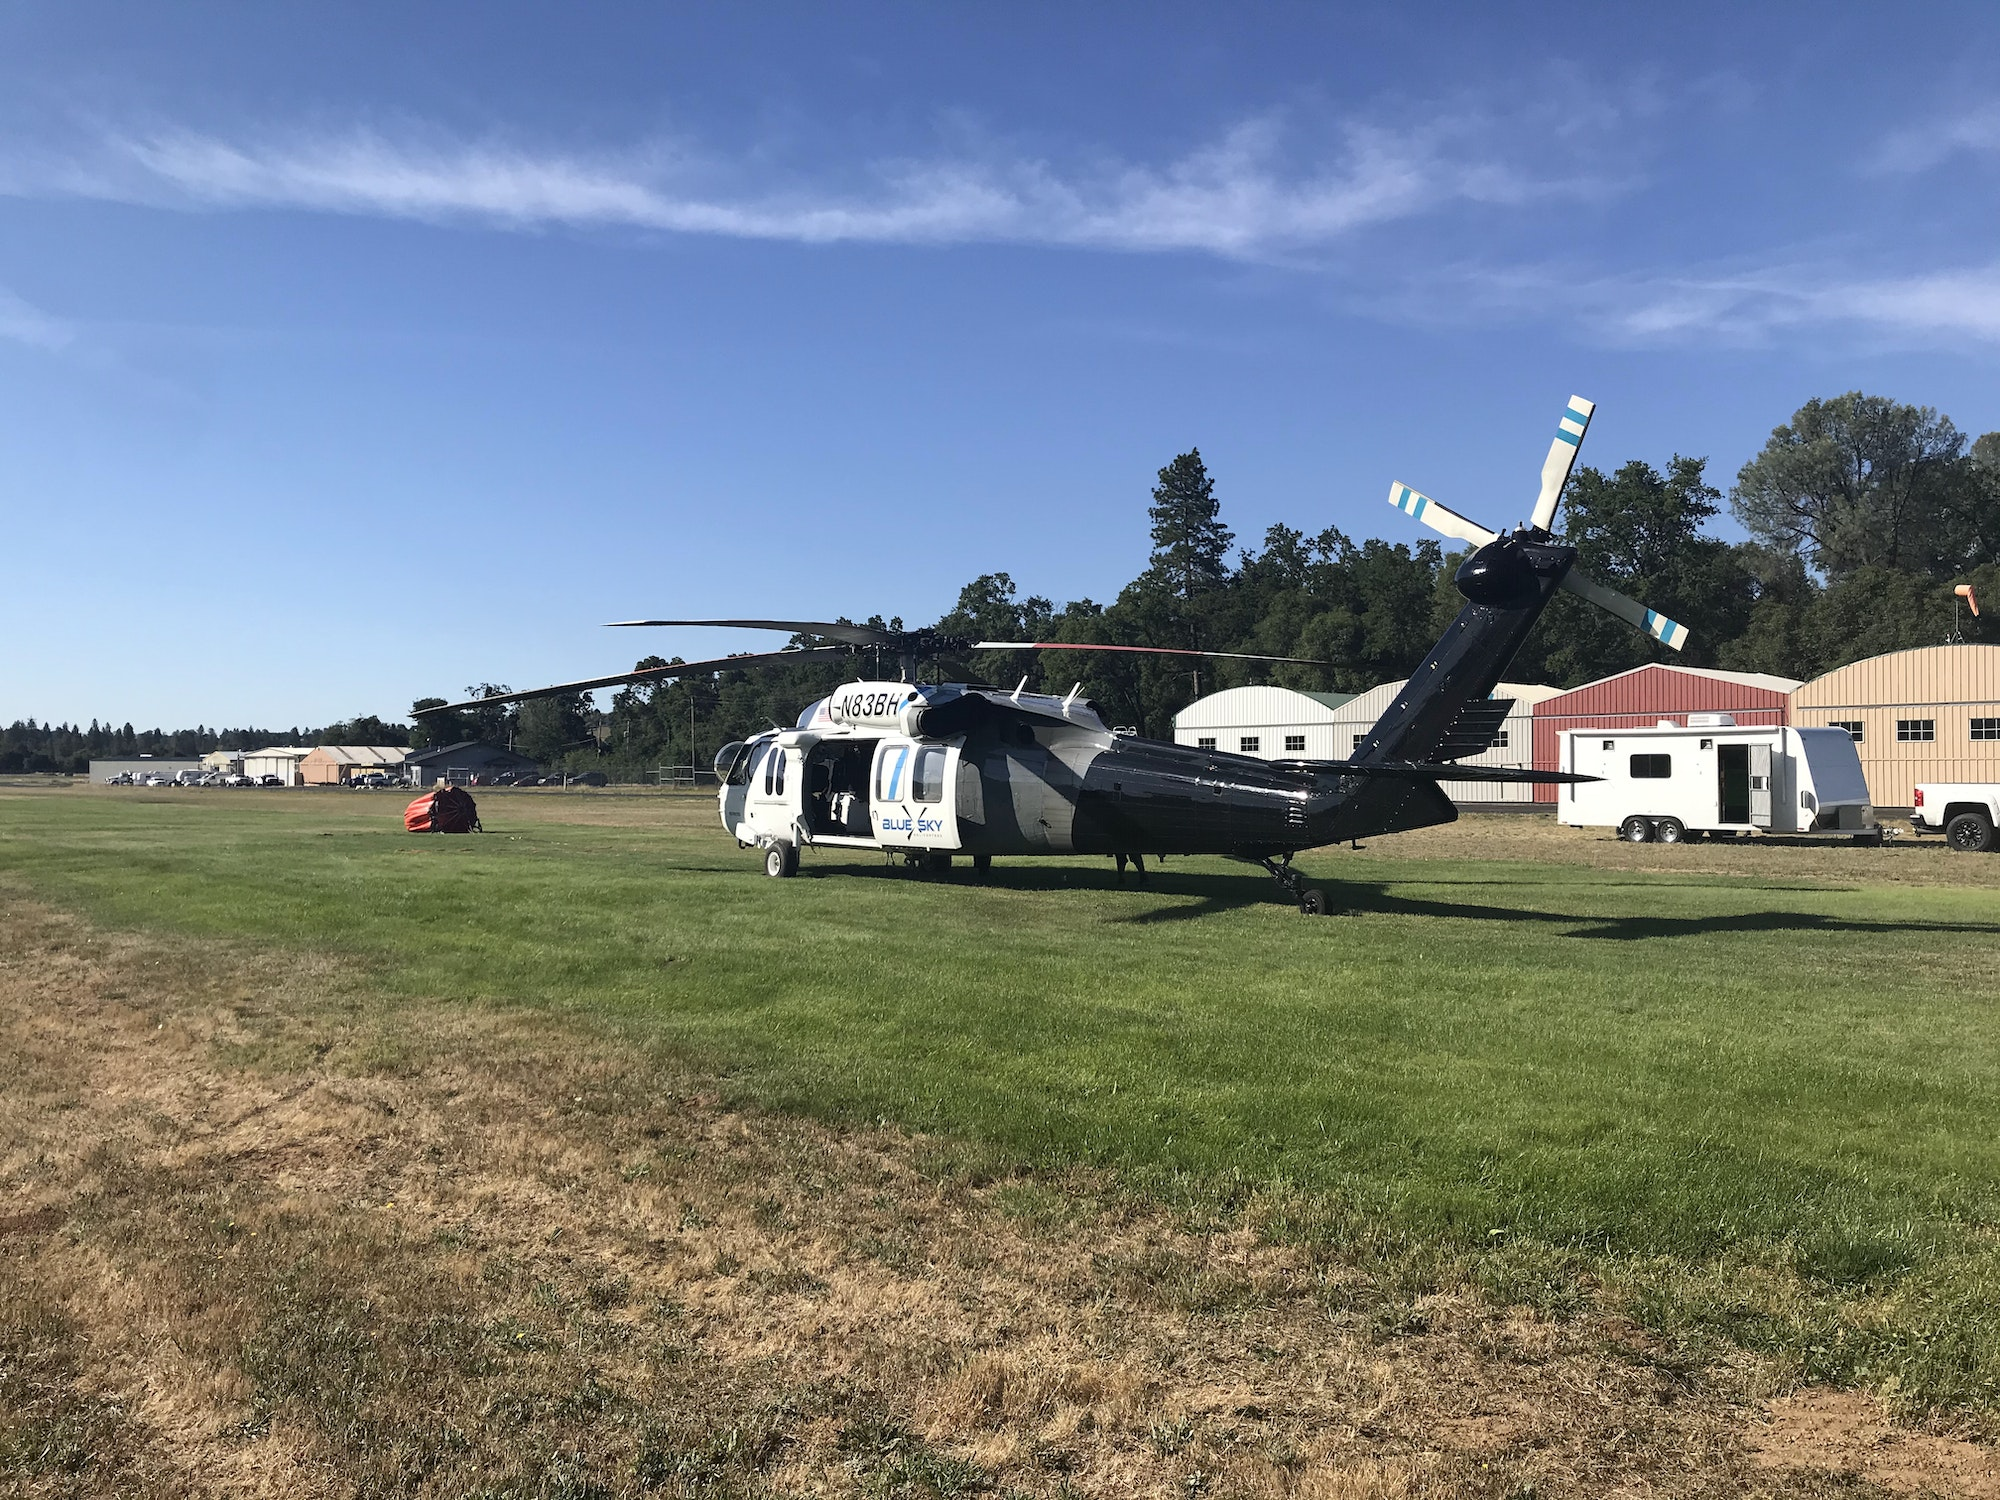 June 17, 2020 Strike team from MWSPFPD E771 Covering Columbia Airbase while CalFire crews are on the Walker Fire North of Copperopolis